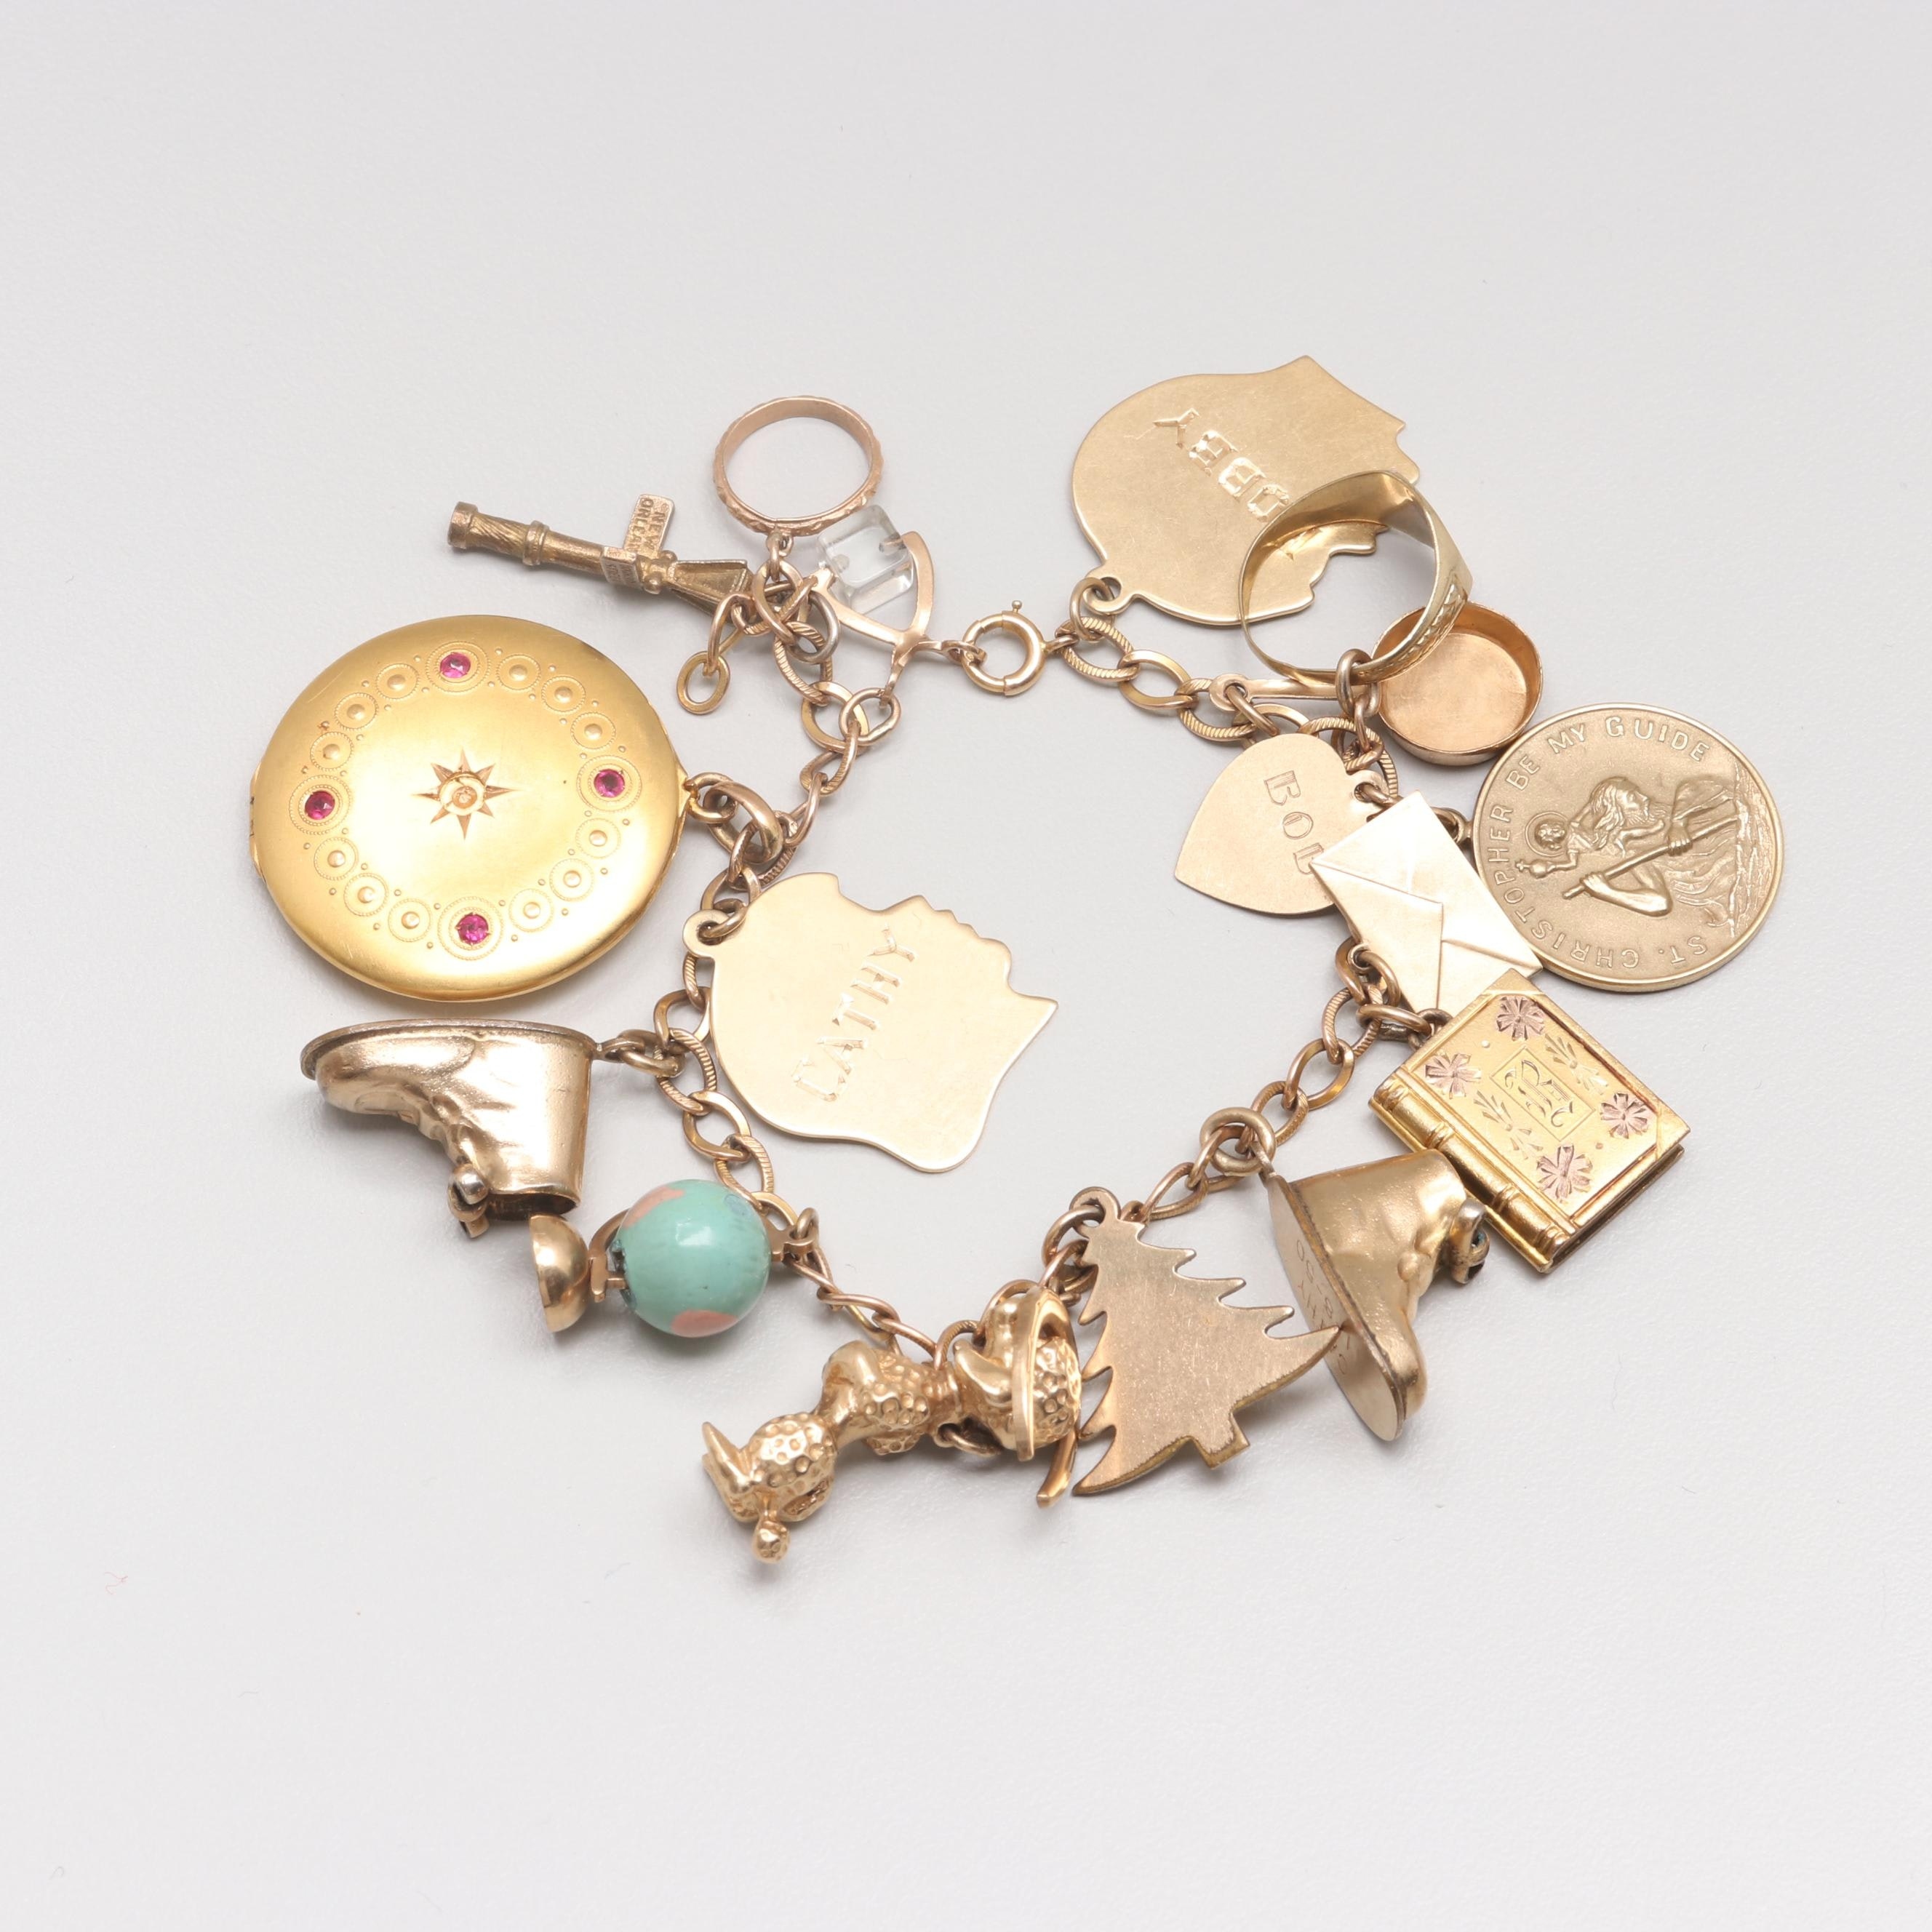 Vintage 10K, 14K, 18K, Yellow Gold and Sterling Silver Charm Bracelet